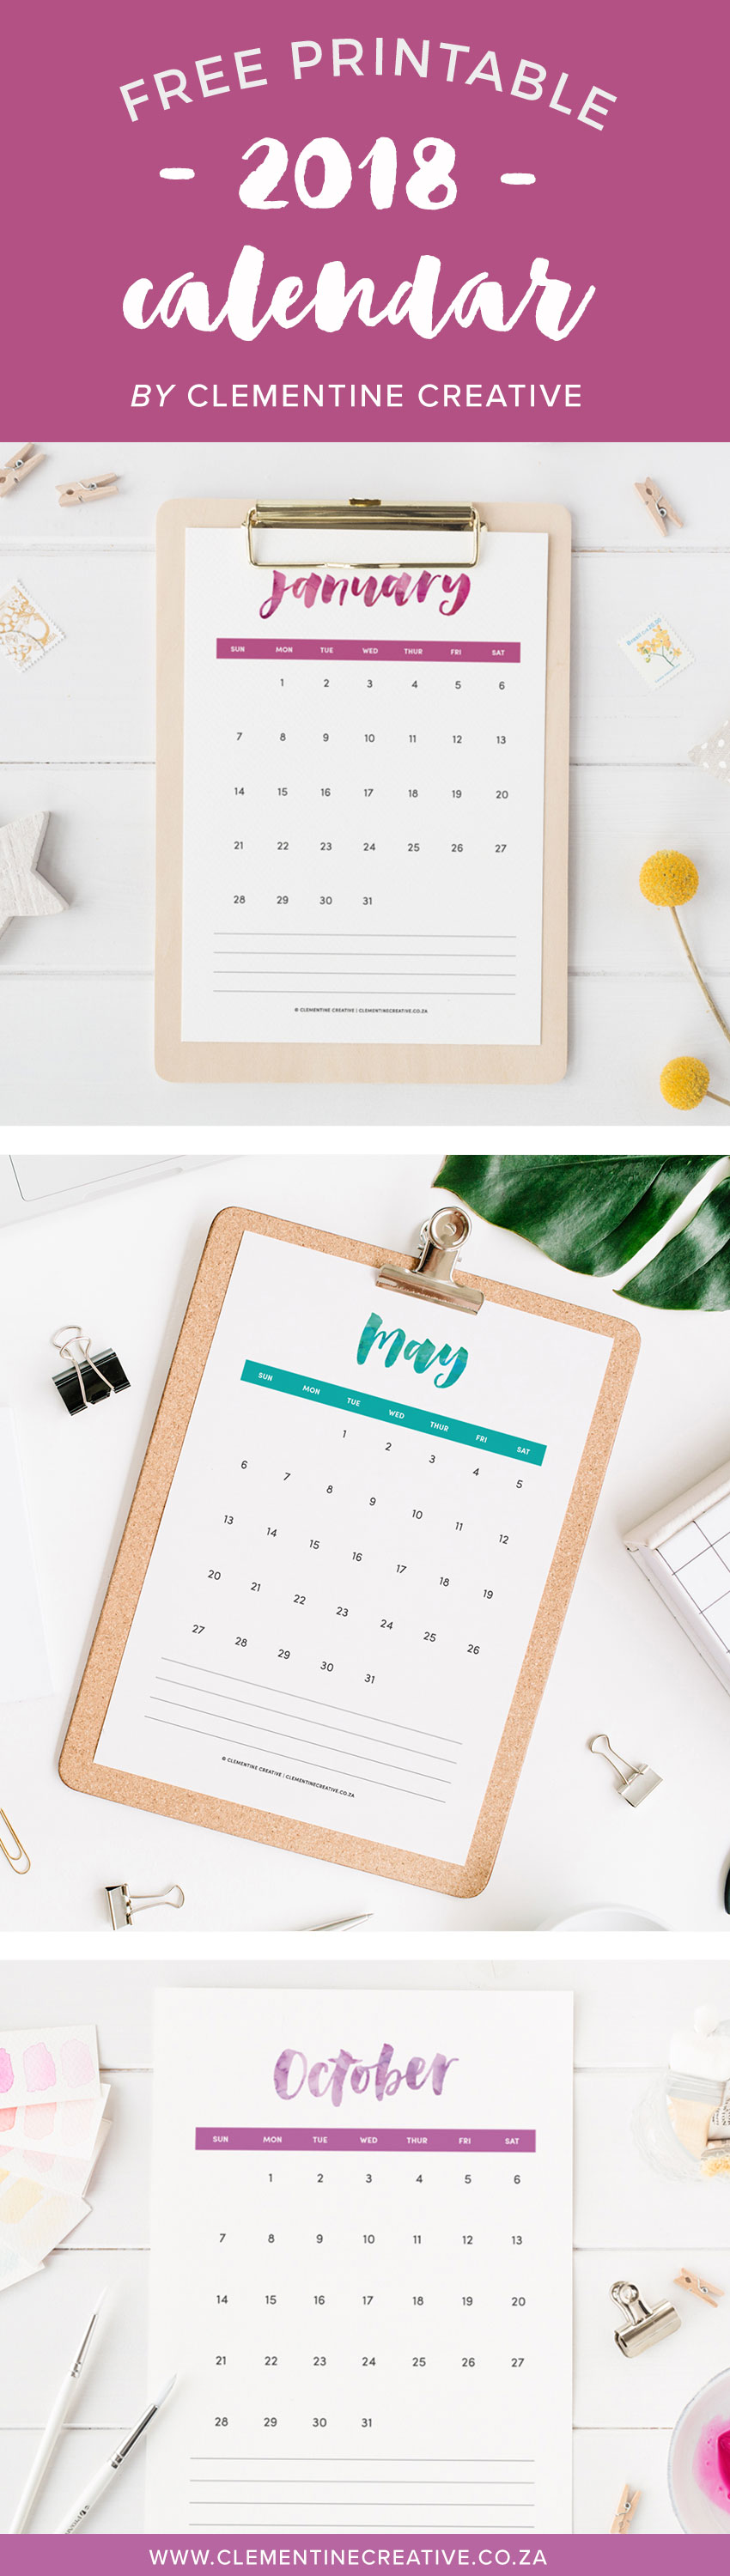 Download a free printable 2018 calendar that was lettered by hand! Put it in a clipboard and display it on your desk or give away as a gift. Click here to download.